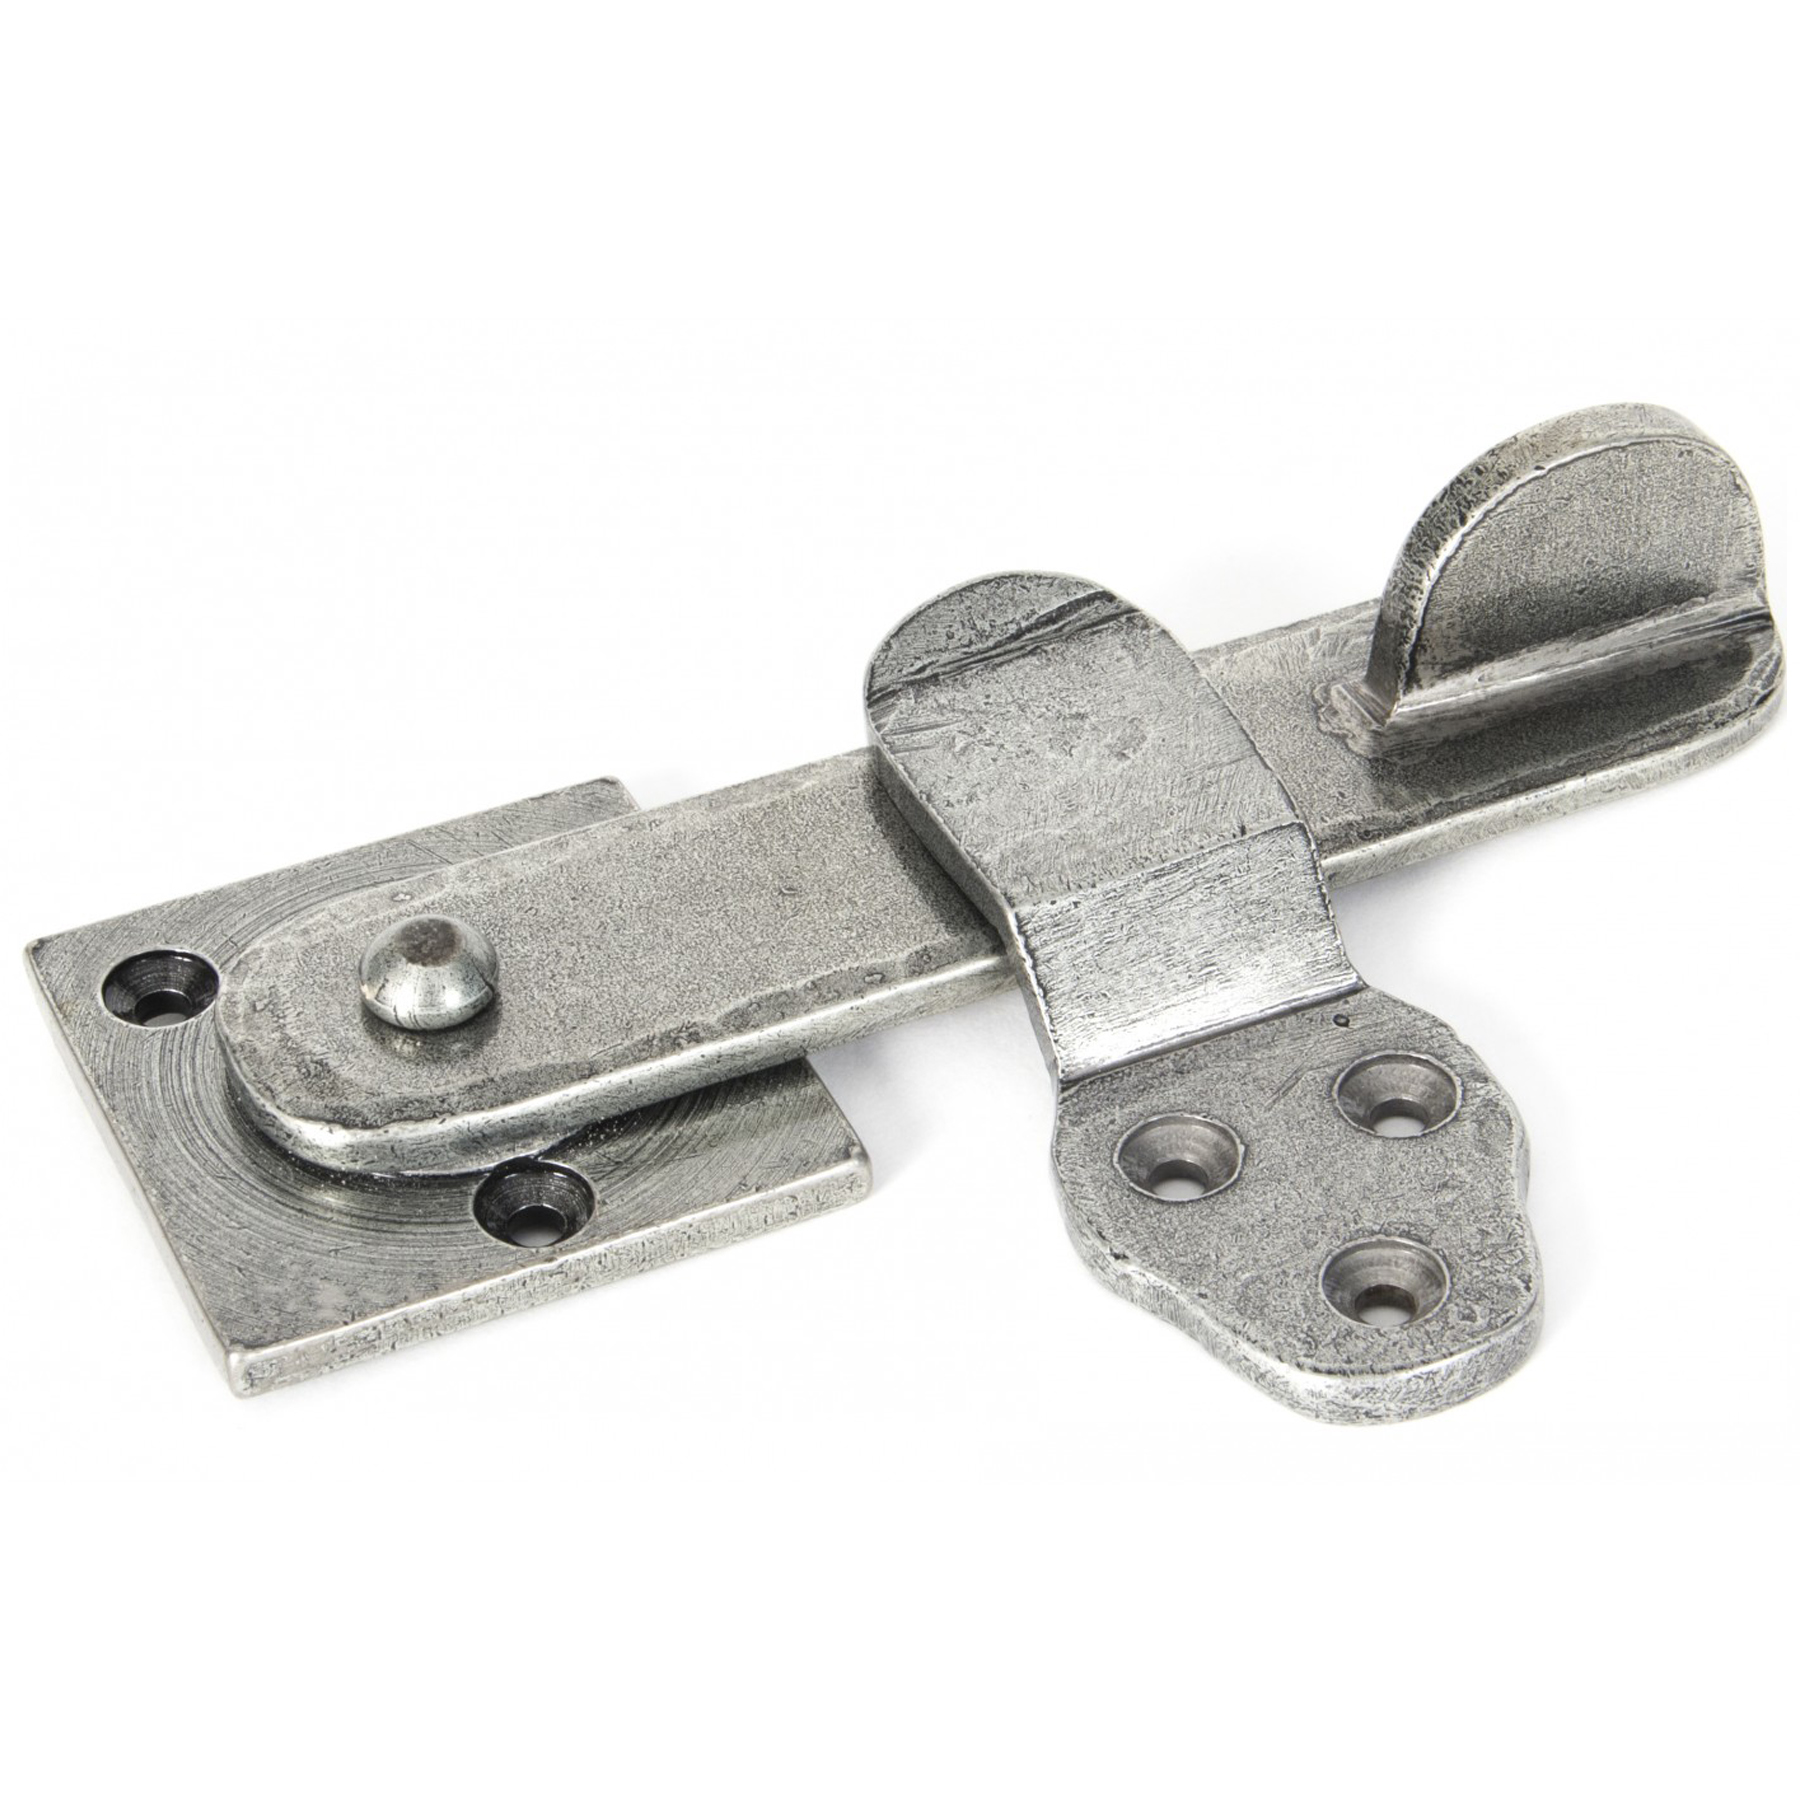 From The Anvil Patina Privacy Latch Set, Pewter - 33393